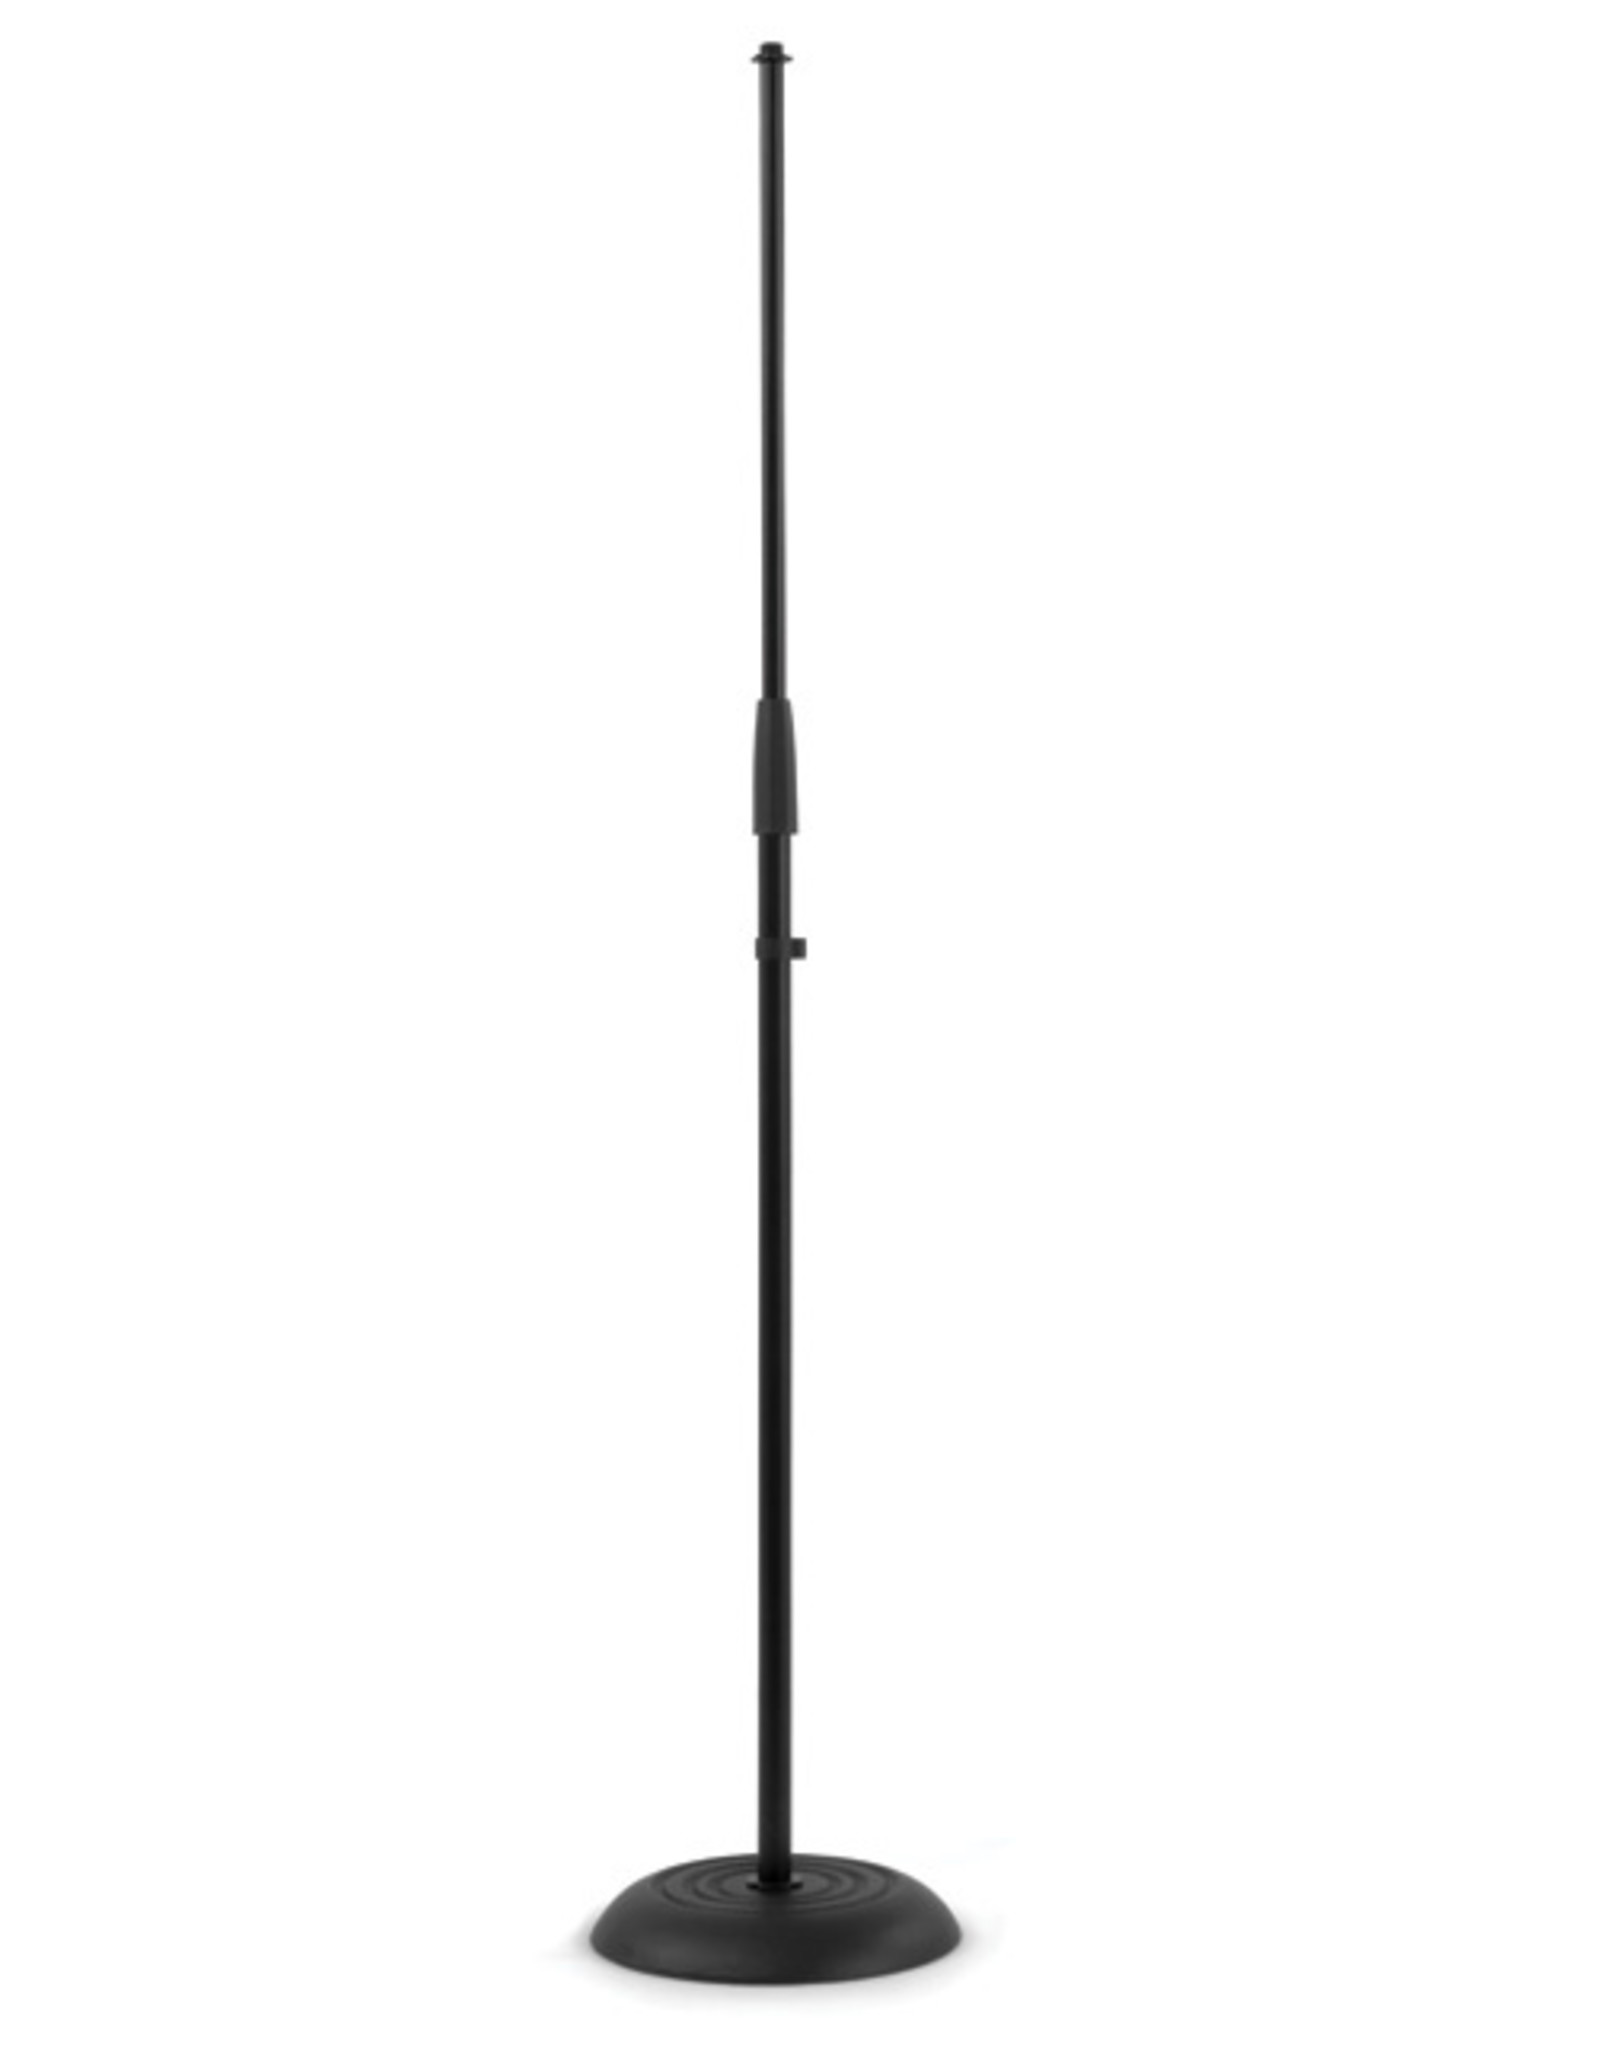 Nomad Nomad Round Base Microphone Stand